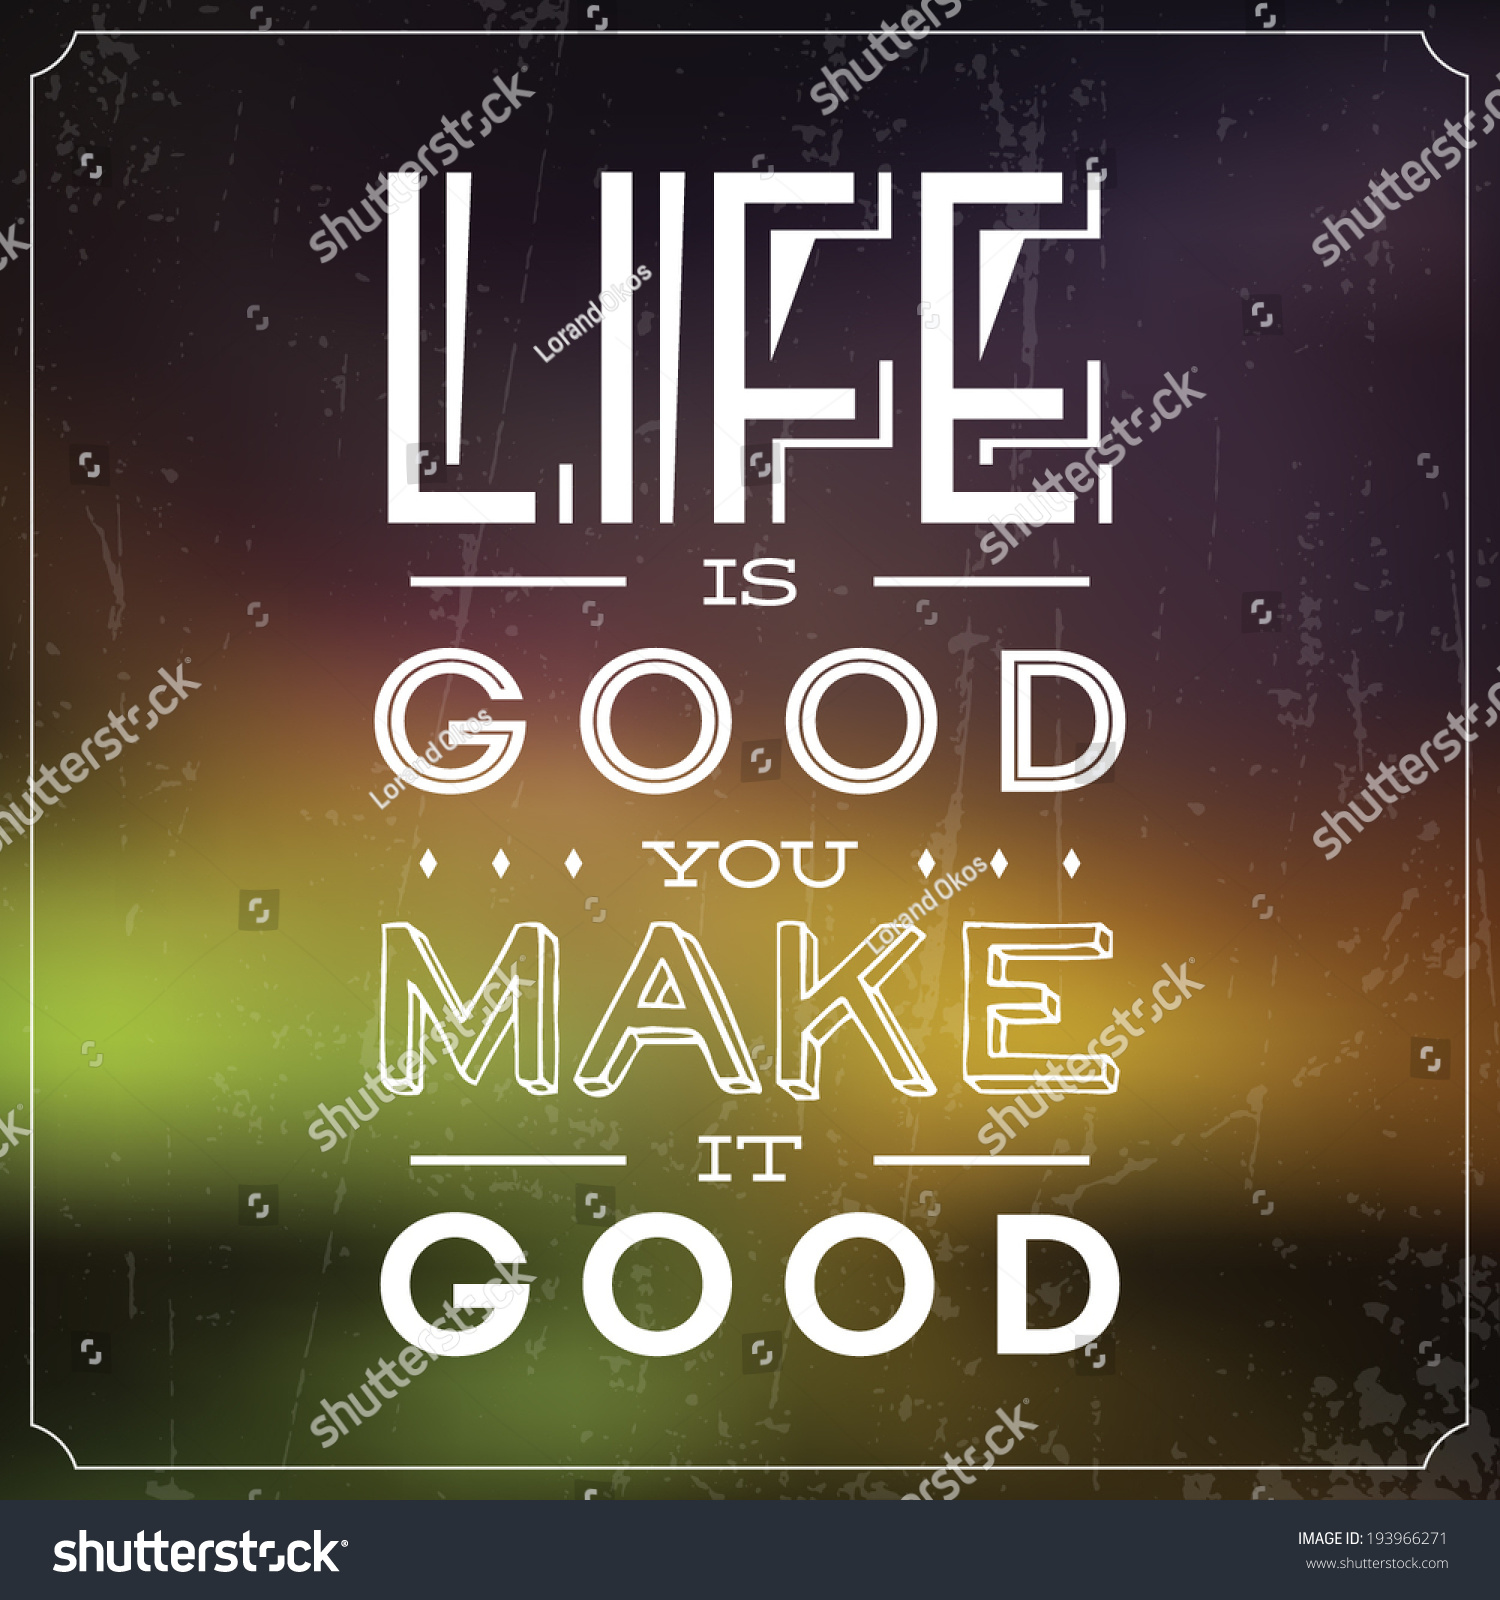 Good Quote About Life Life Good You Make Good Quote Stock Vector 193966271  Shutterstock